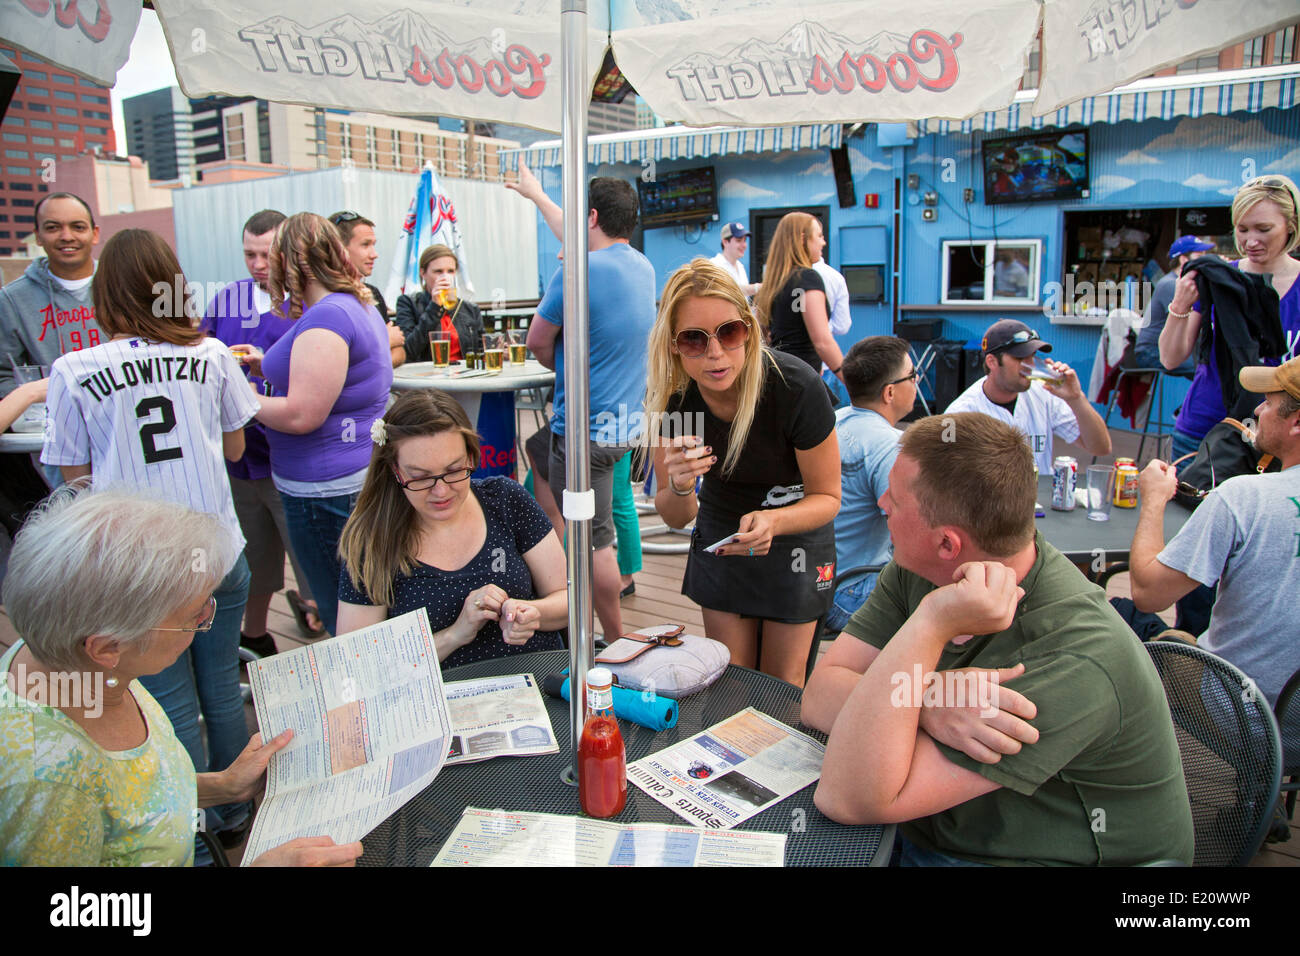 Denver, Colorado - A server takes orders from baseball fans on the outdoor deck of the Sports Column. - Stock Image